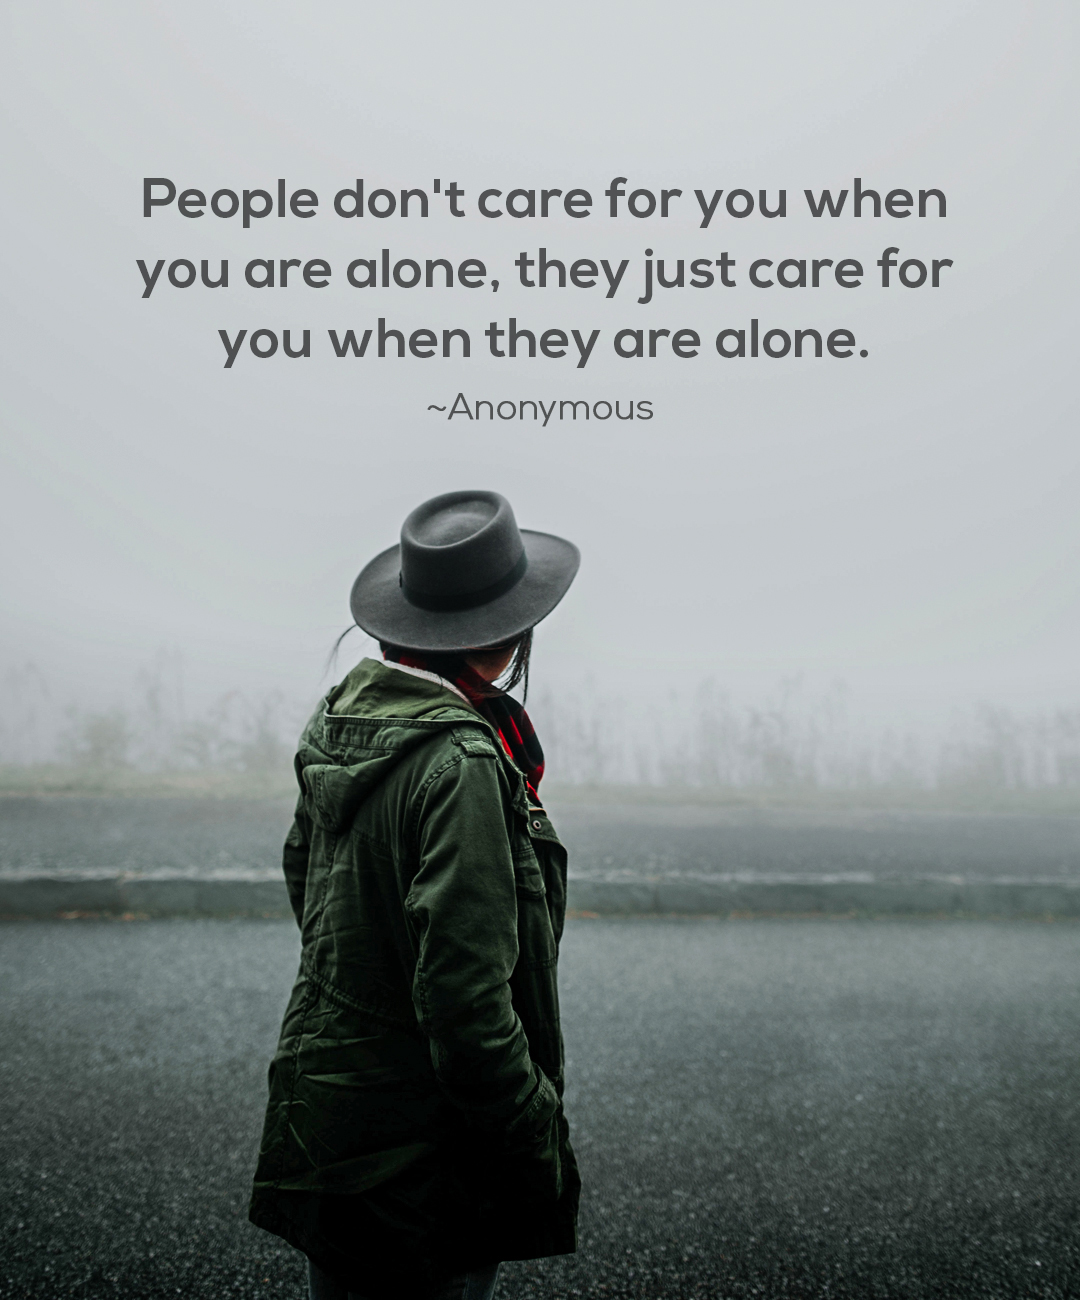 """People don't care for you when you are alone, they just care for you when they are alone."" -Anonymous [1800×1300]"